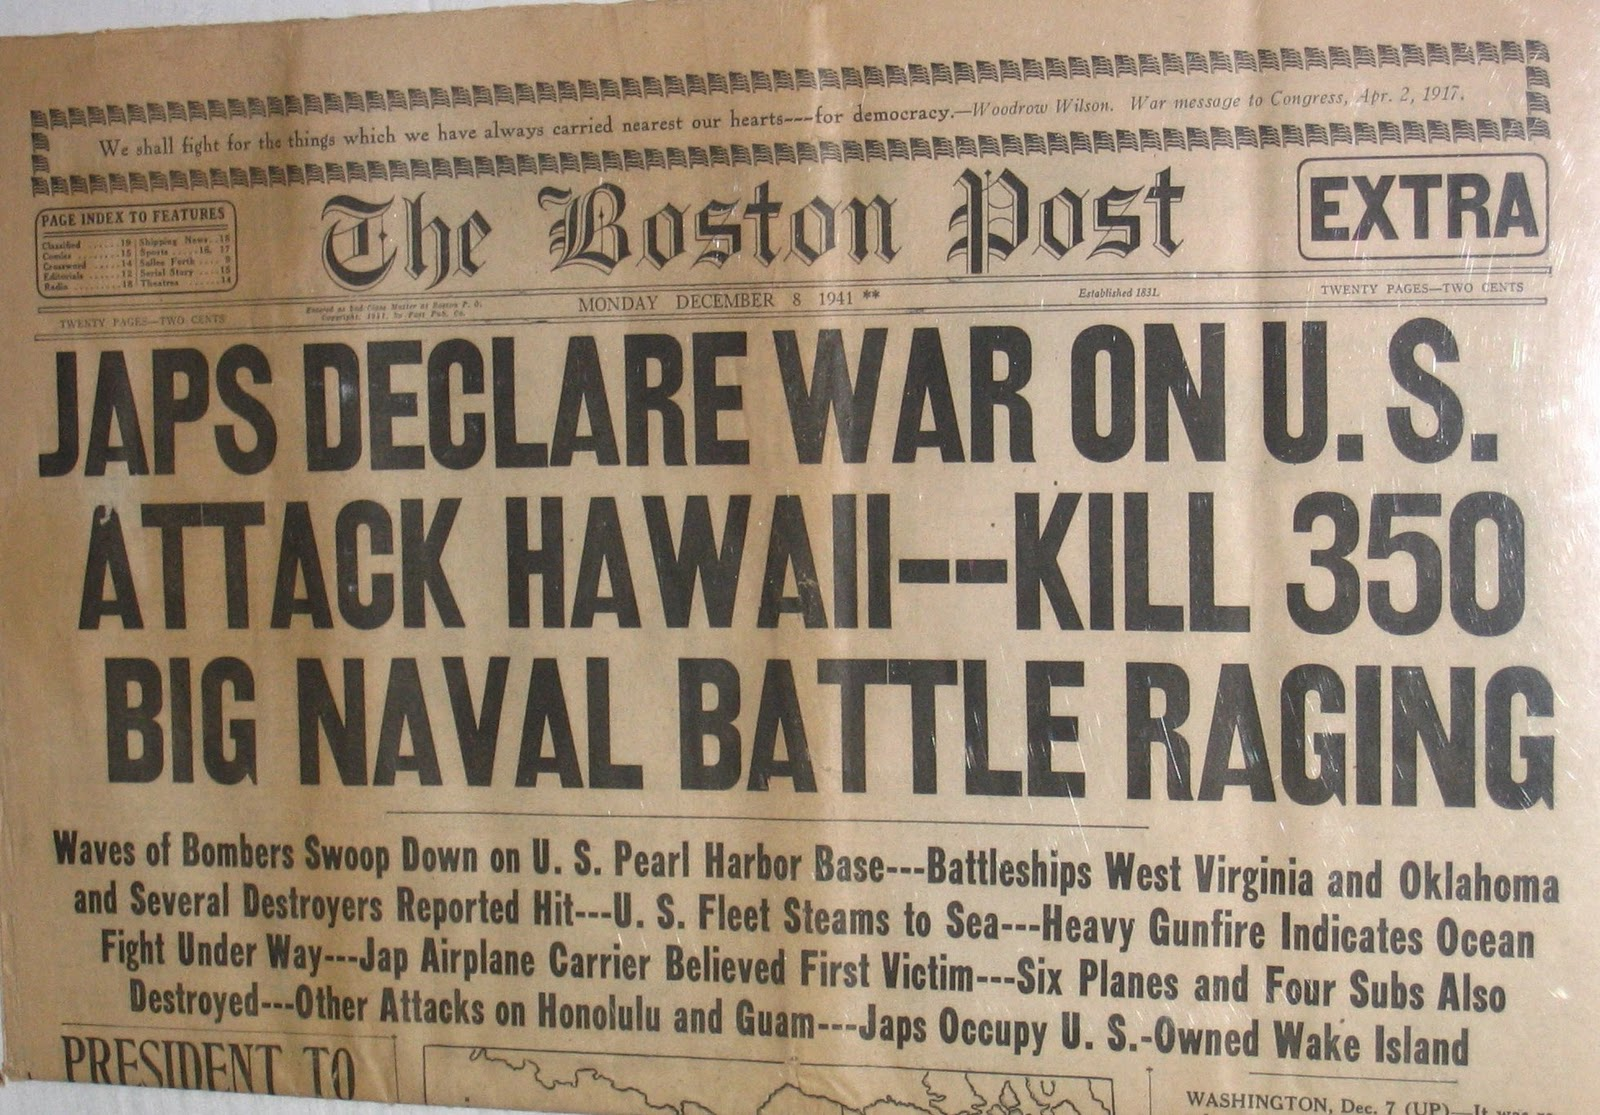 december 7 1941 a day that will live in infamy 'a date which will live in infamy' the first typed draft of franklin d roosevelt's war address background early in the afternoon of december 7, 1941, president franklin d roosevelt and his chief foreign policy aide, harry hopkins, were interrupted by a telephone call from secretary of war henry stimson and told that the japanese had attacked pearl harbor.